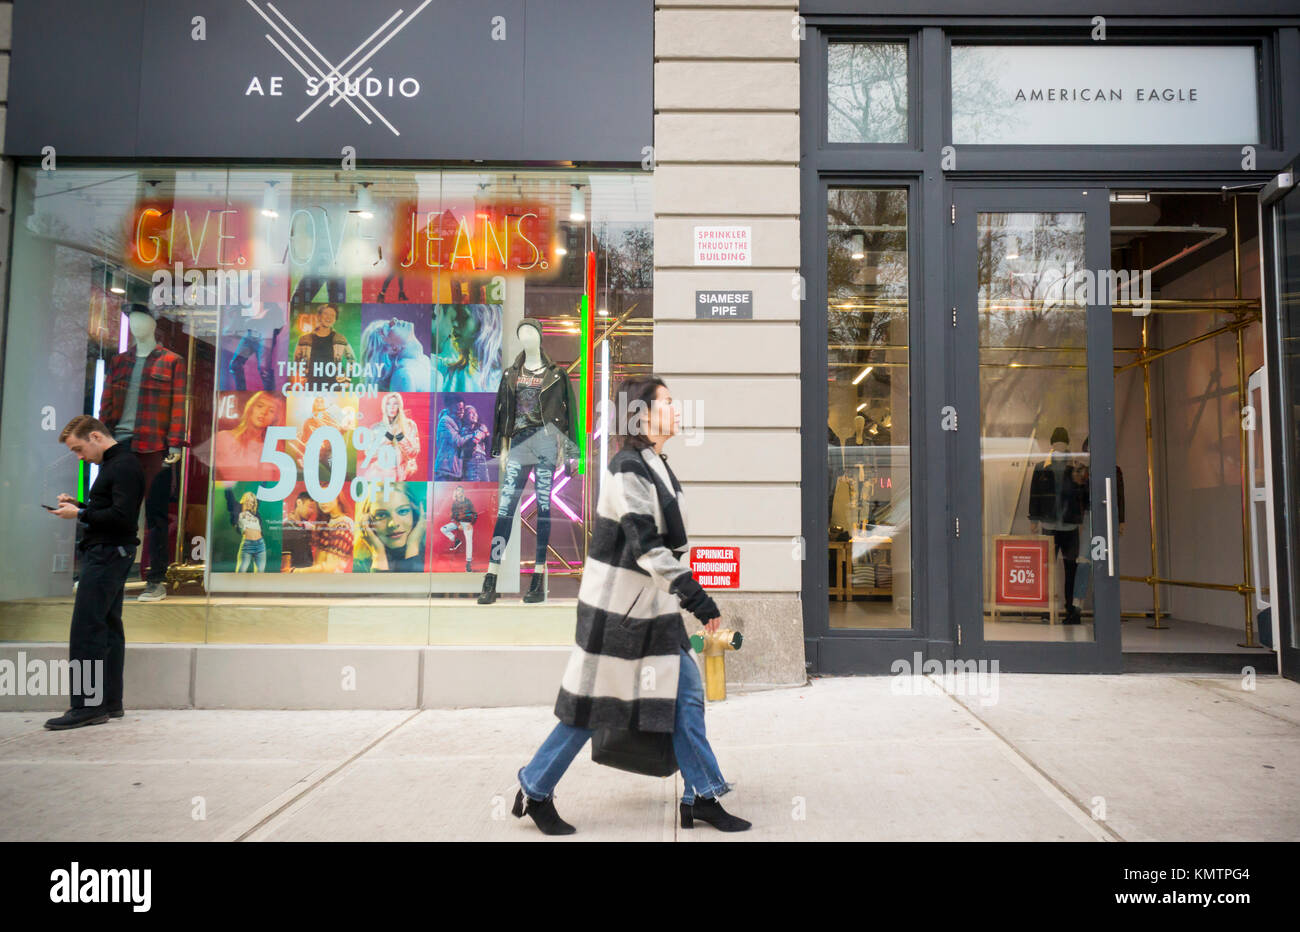 A spanking brand-new AE Studio store, a brand of American Eagle Outfitters, in Union Square in New York on Wednesday, - Stock Image